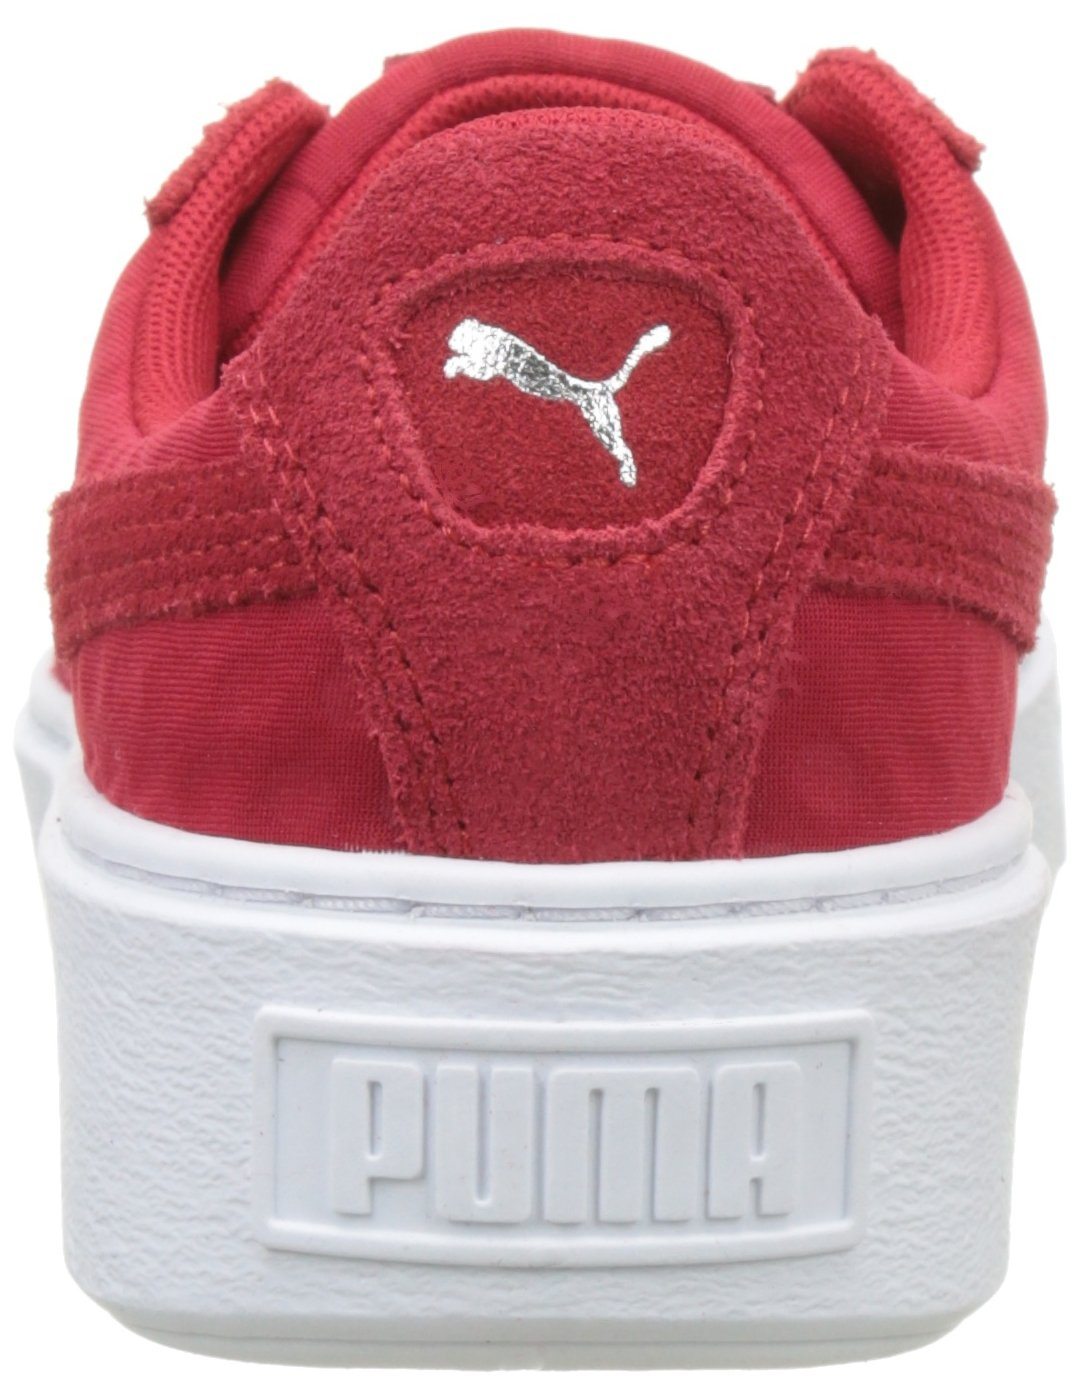 be87ea22706 PUMA Basket Platform DE WNS Shoes Women Red  Amazon.com.au  Fashion